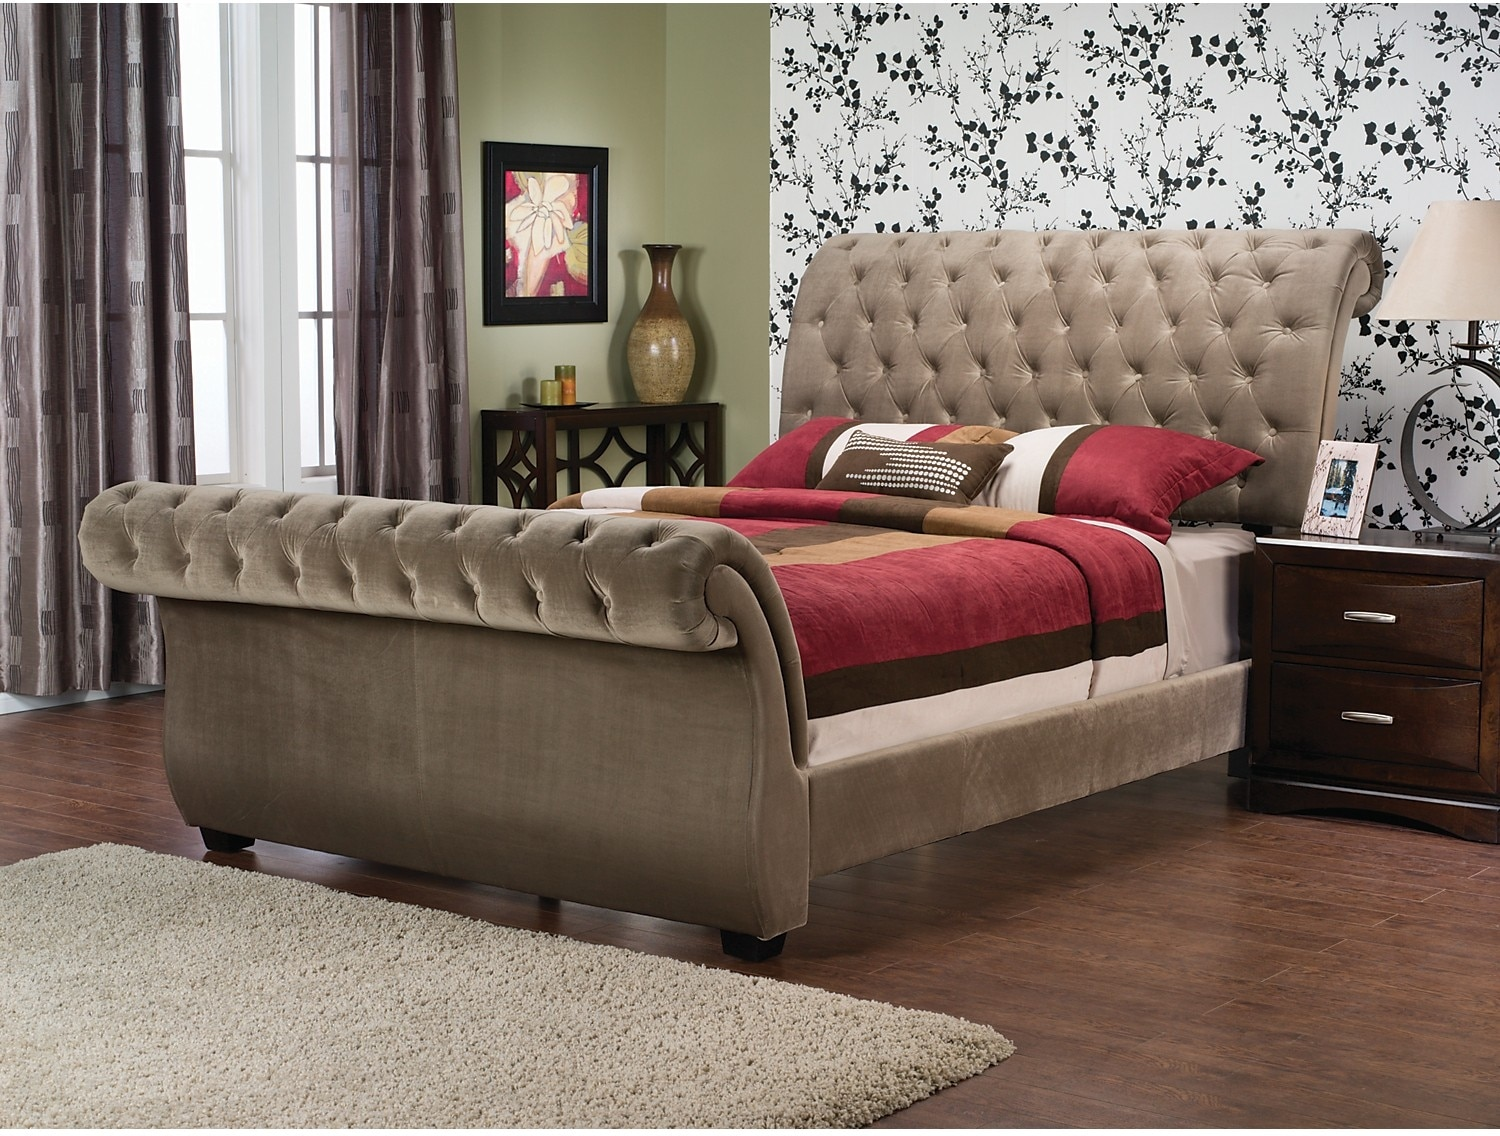 Bedroom Furniture - Westminster Polyester Velvet King Bed